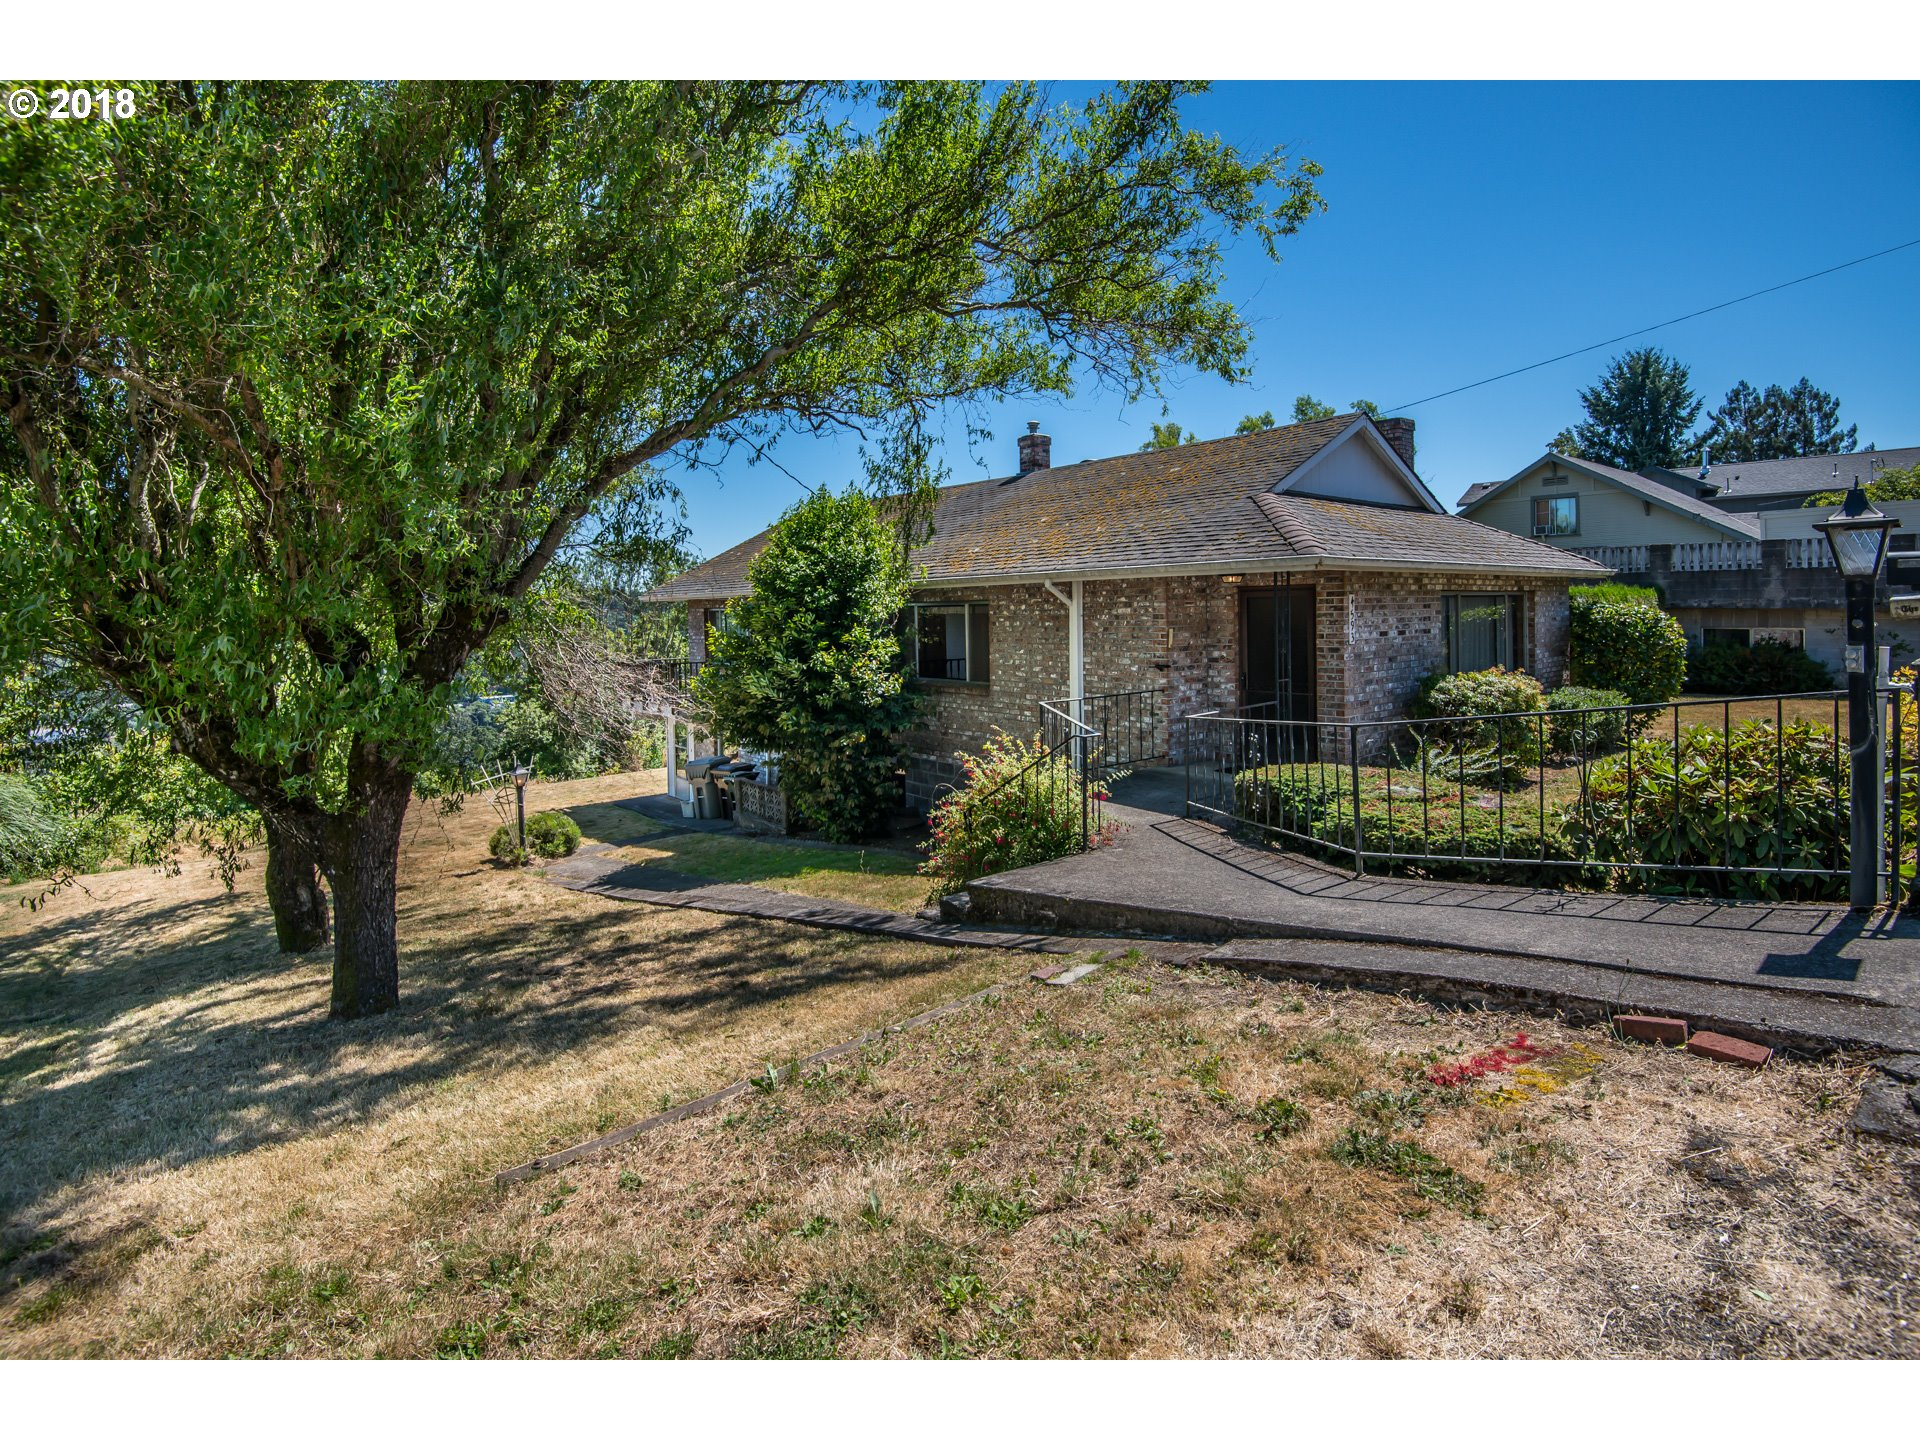 4593 RIVERVIEW AVE, West Linn, OR 97068